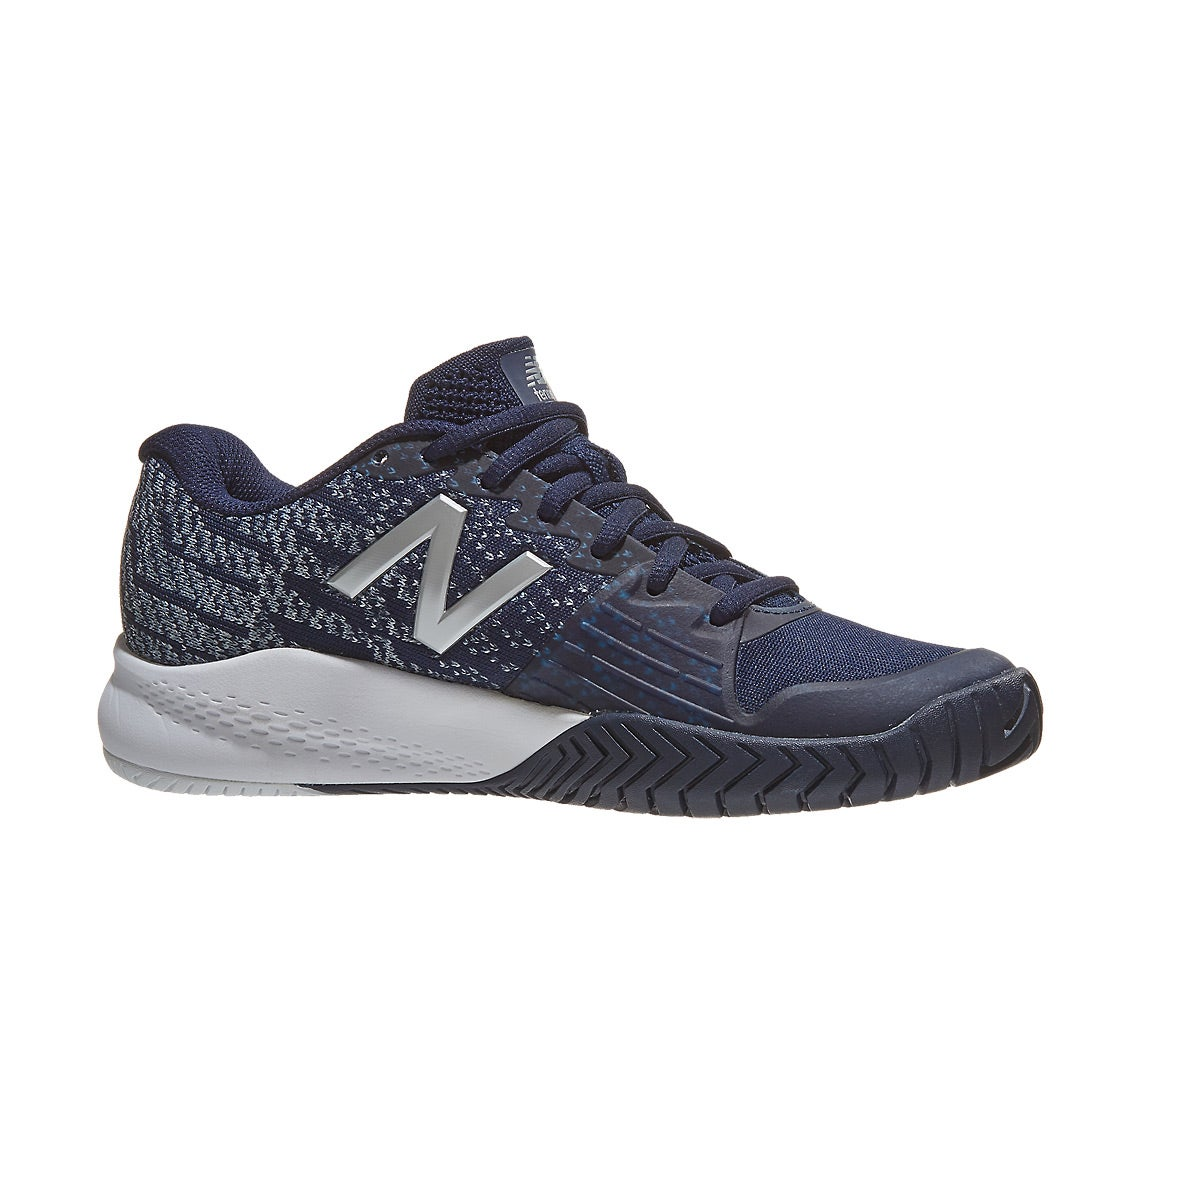 001482ea59624 ... coupon for new balance wc 996v3 d navy silver womens shoe 360 view.  23369 50399